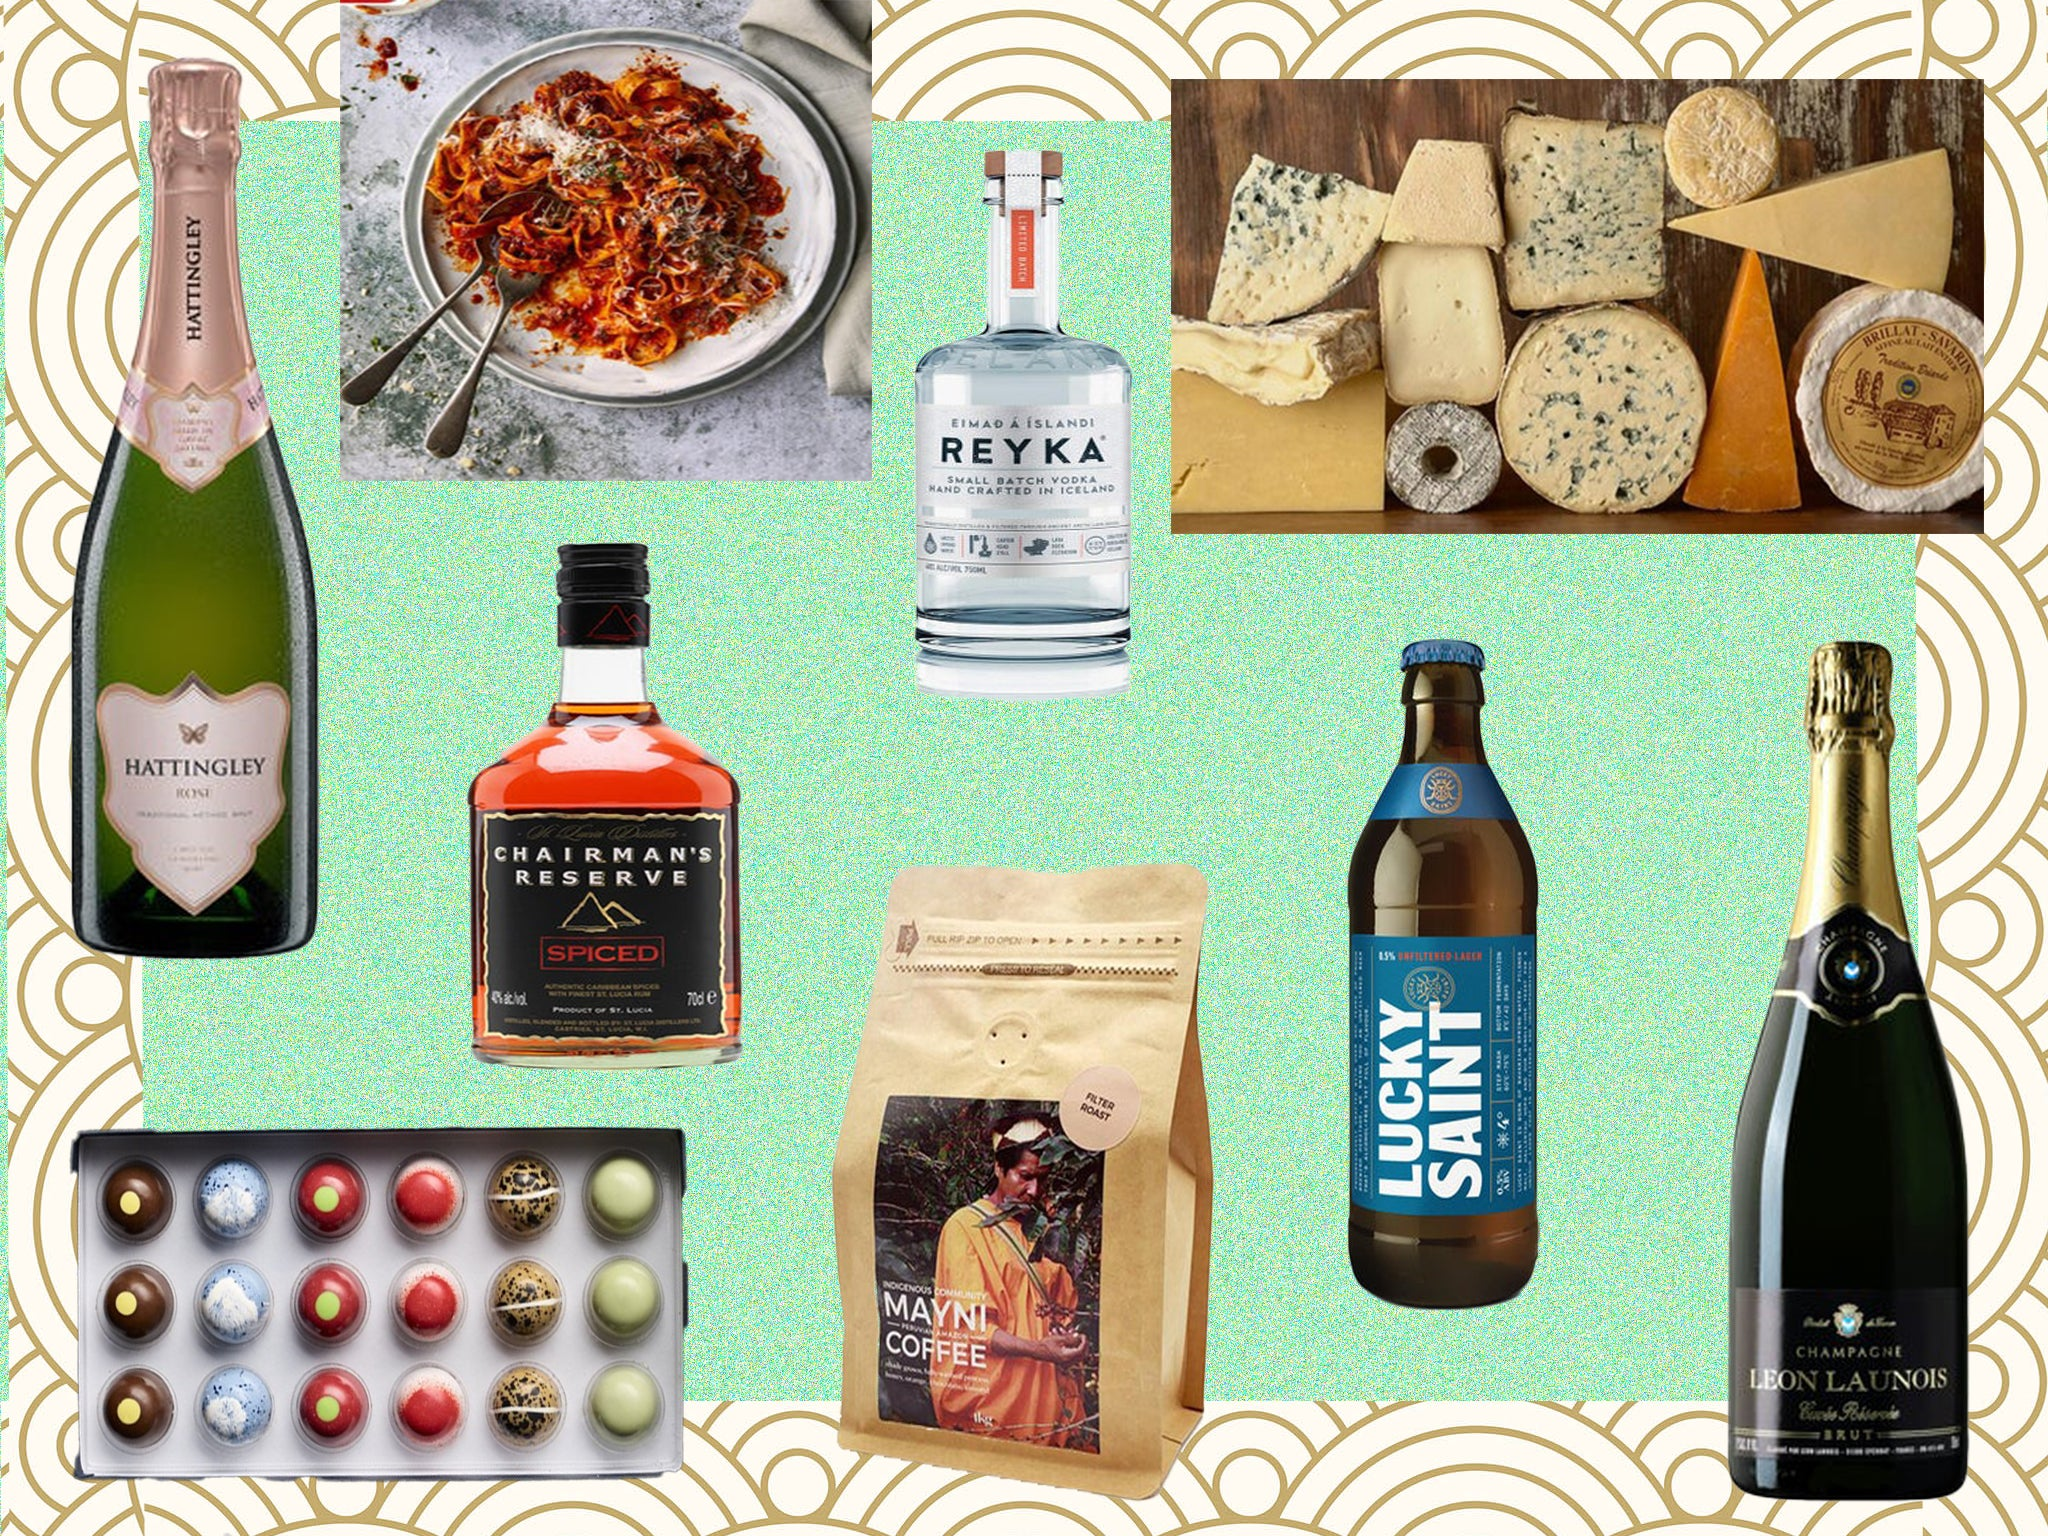 IndyBest's best food and drink buys of 2020